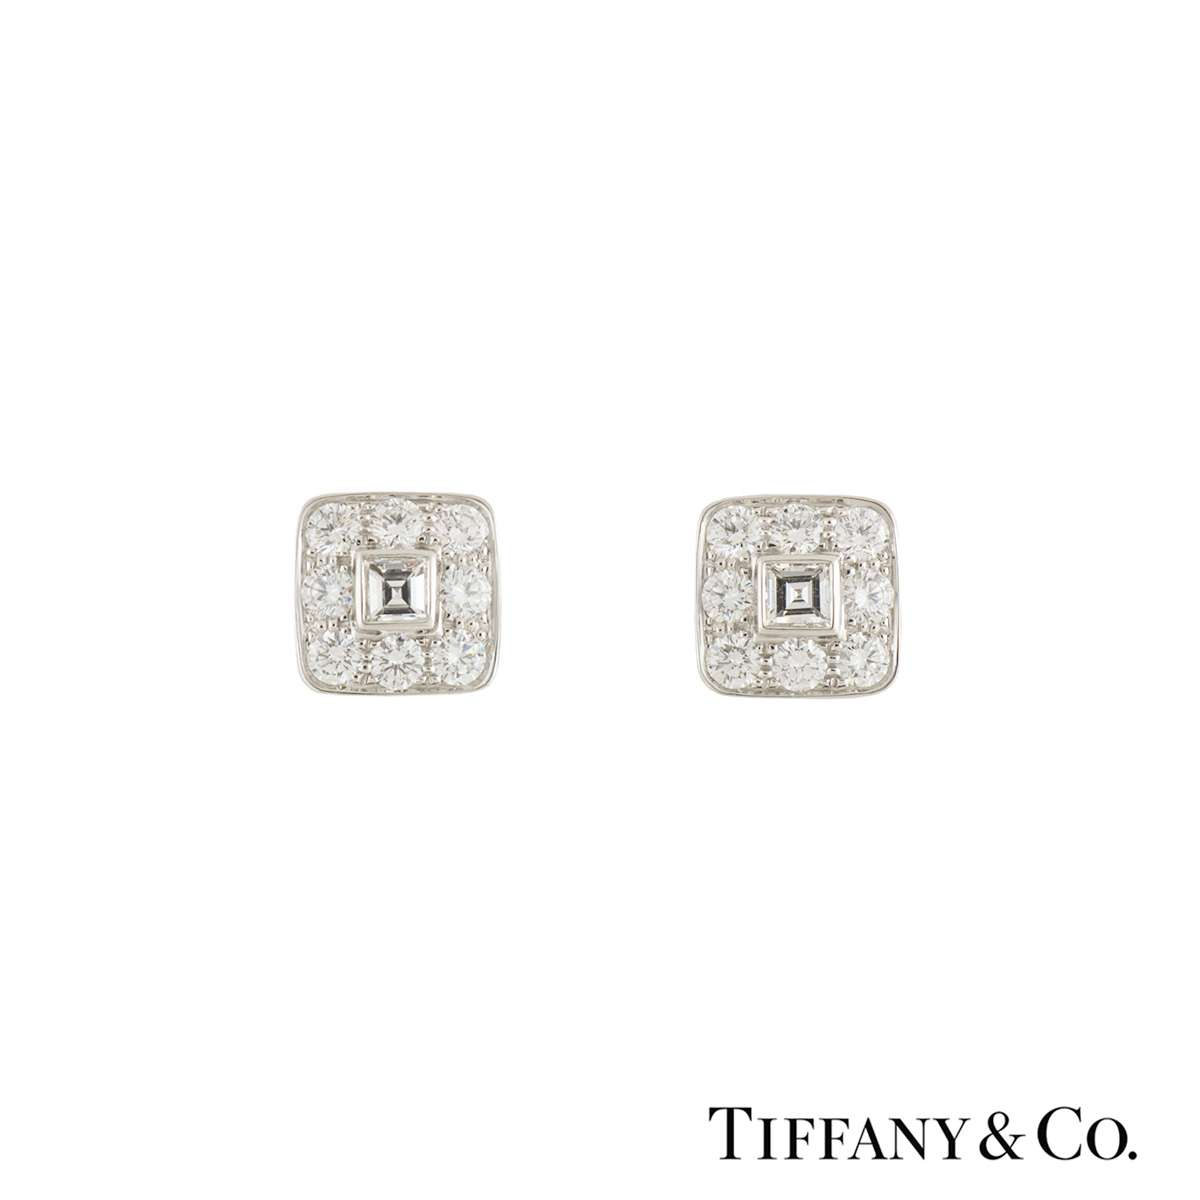 9e0f0b2c7 Platinum Diamond Stud Earrings